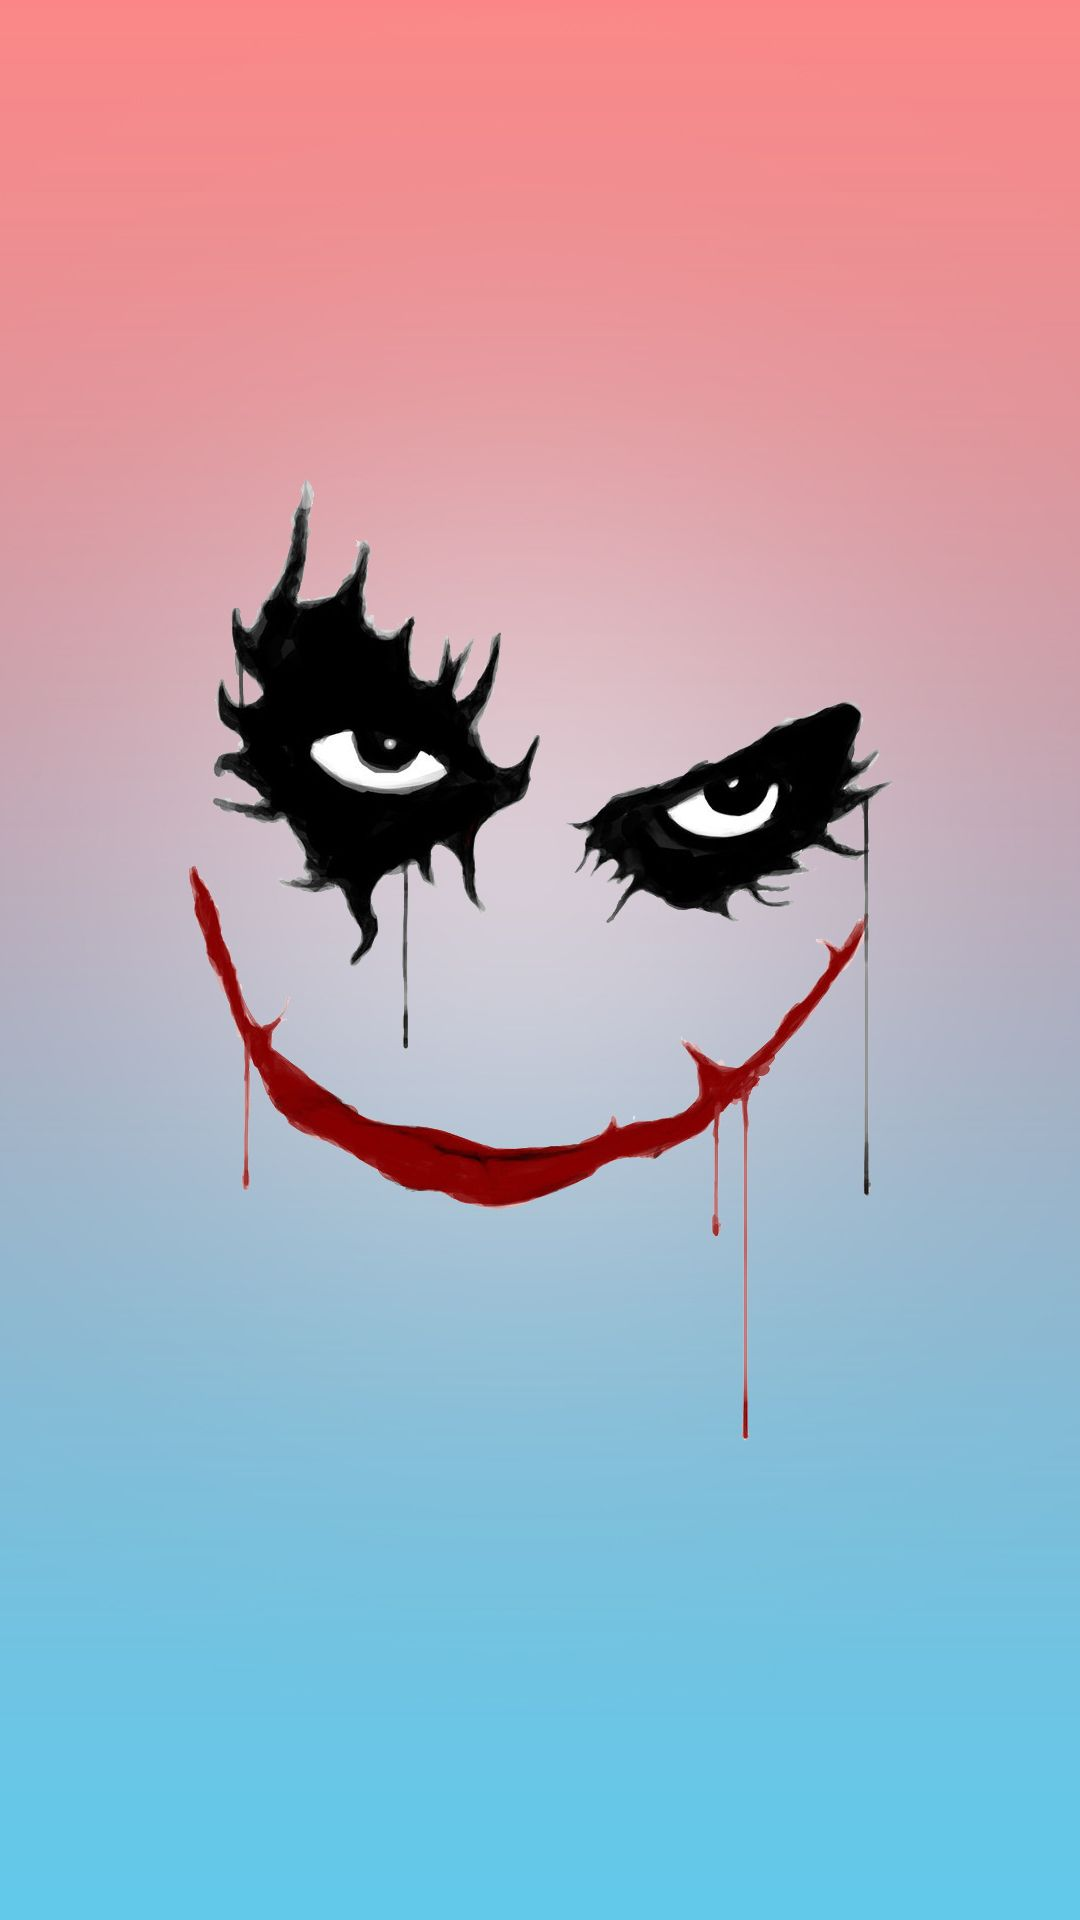 Joker Wallpaper Iphone Xs Max in 2020 (With images